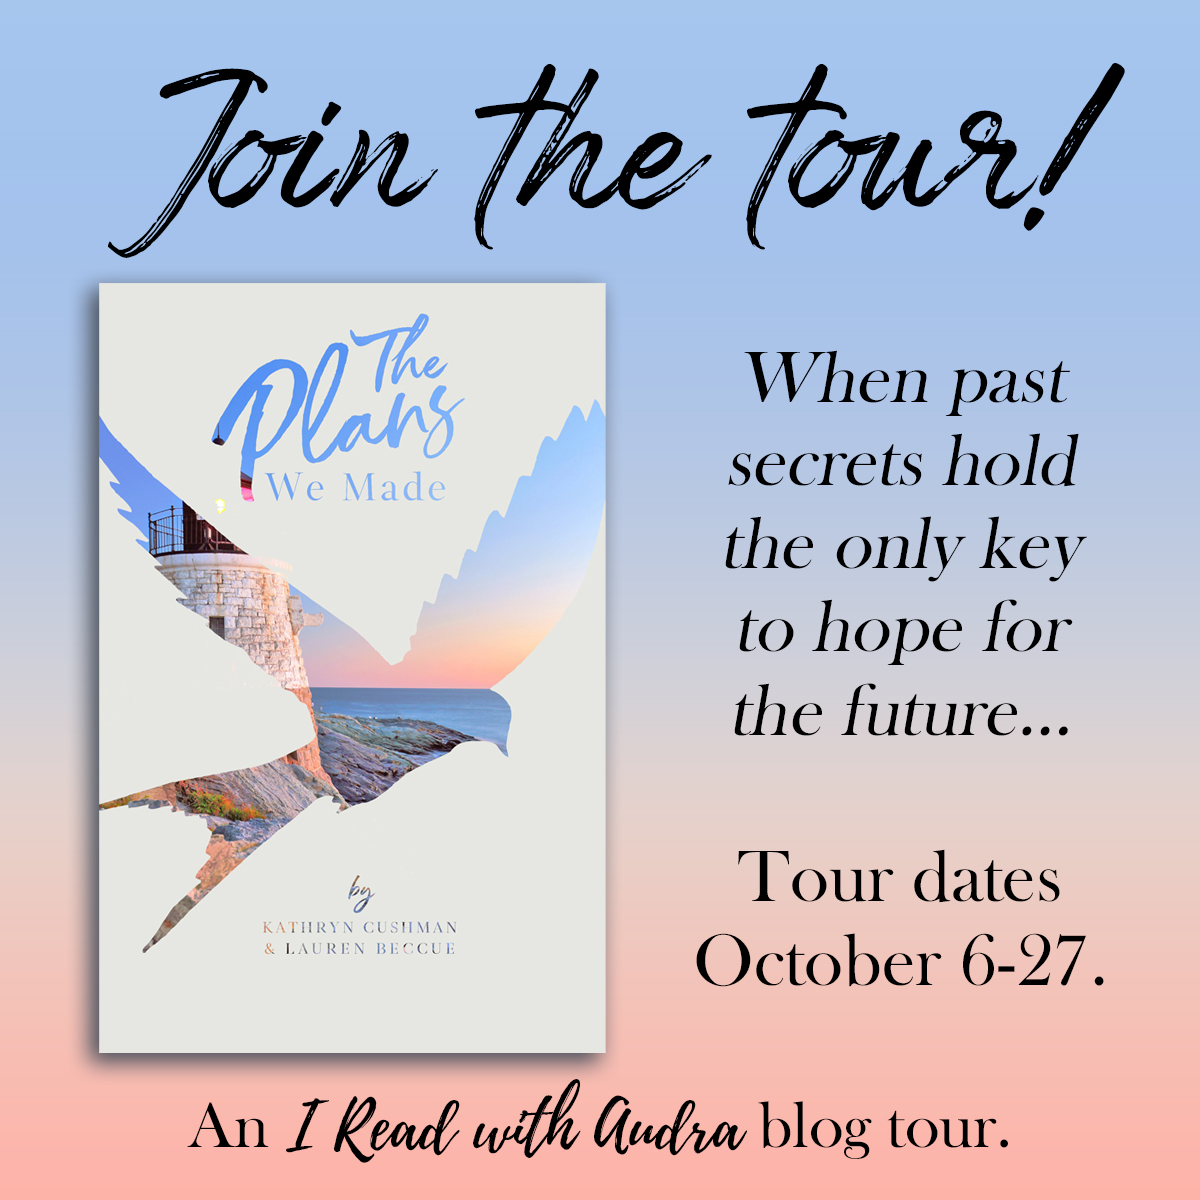 Blog tour sign-ups are open!